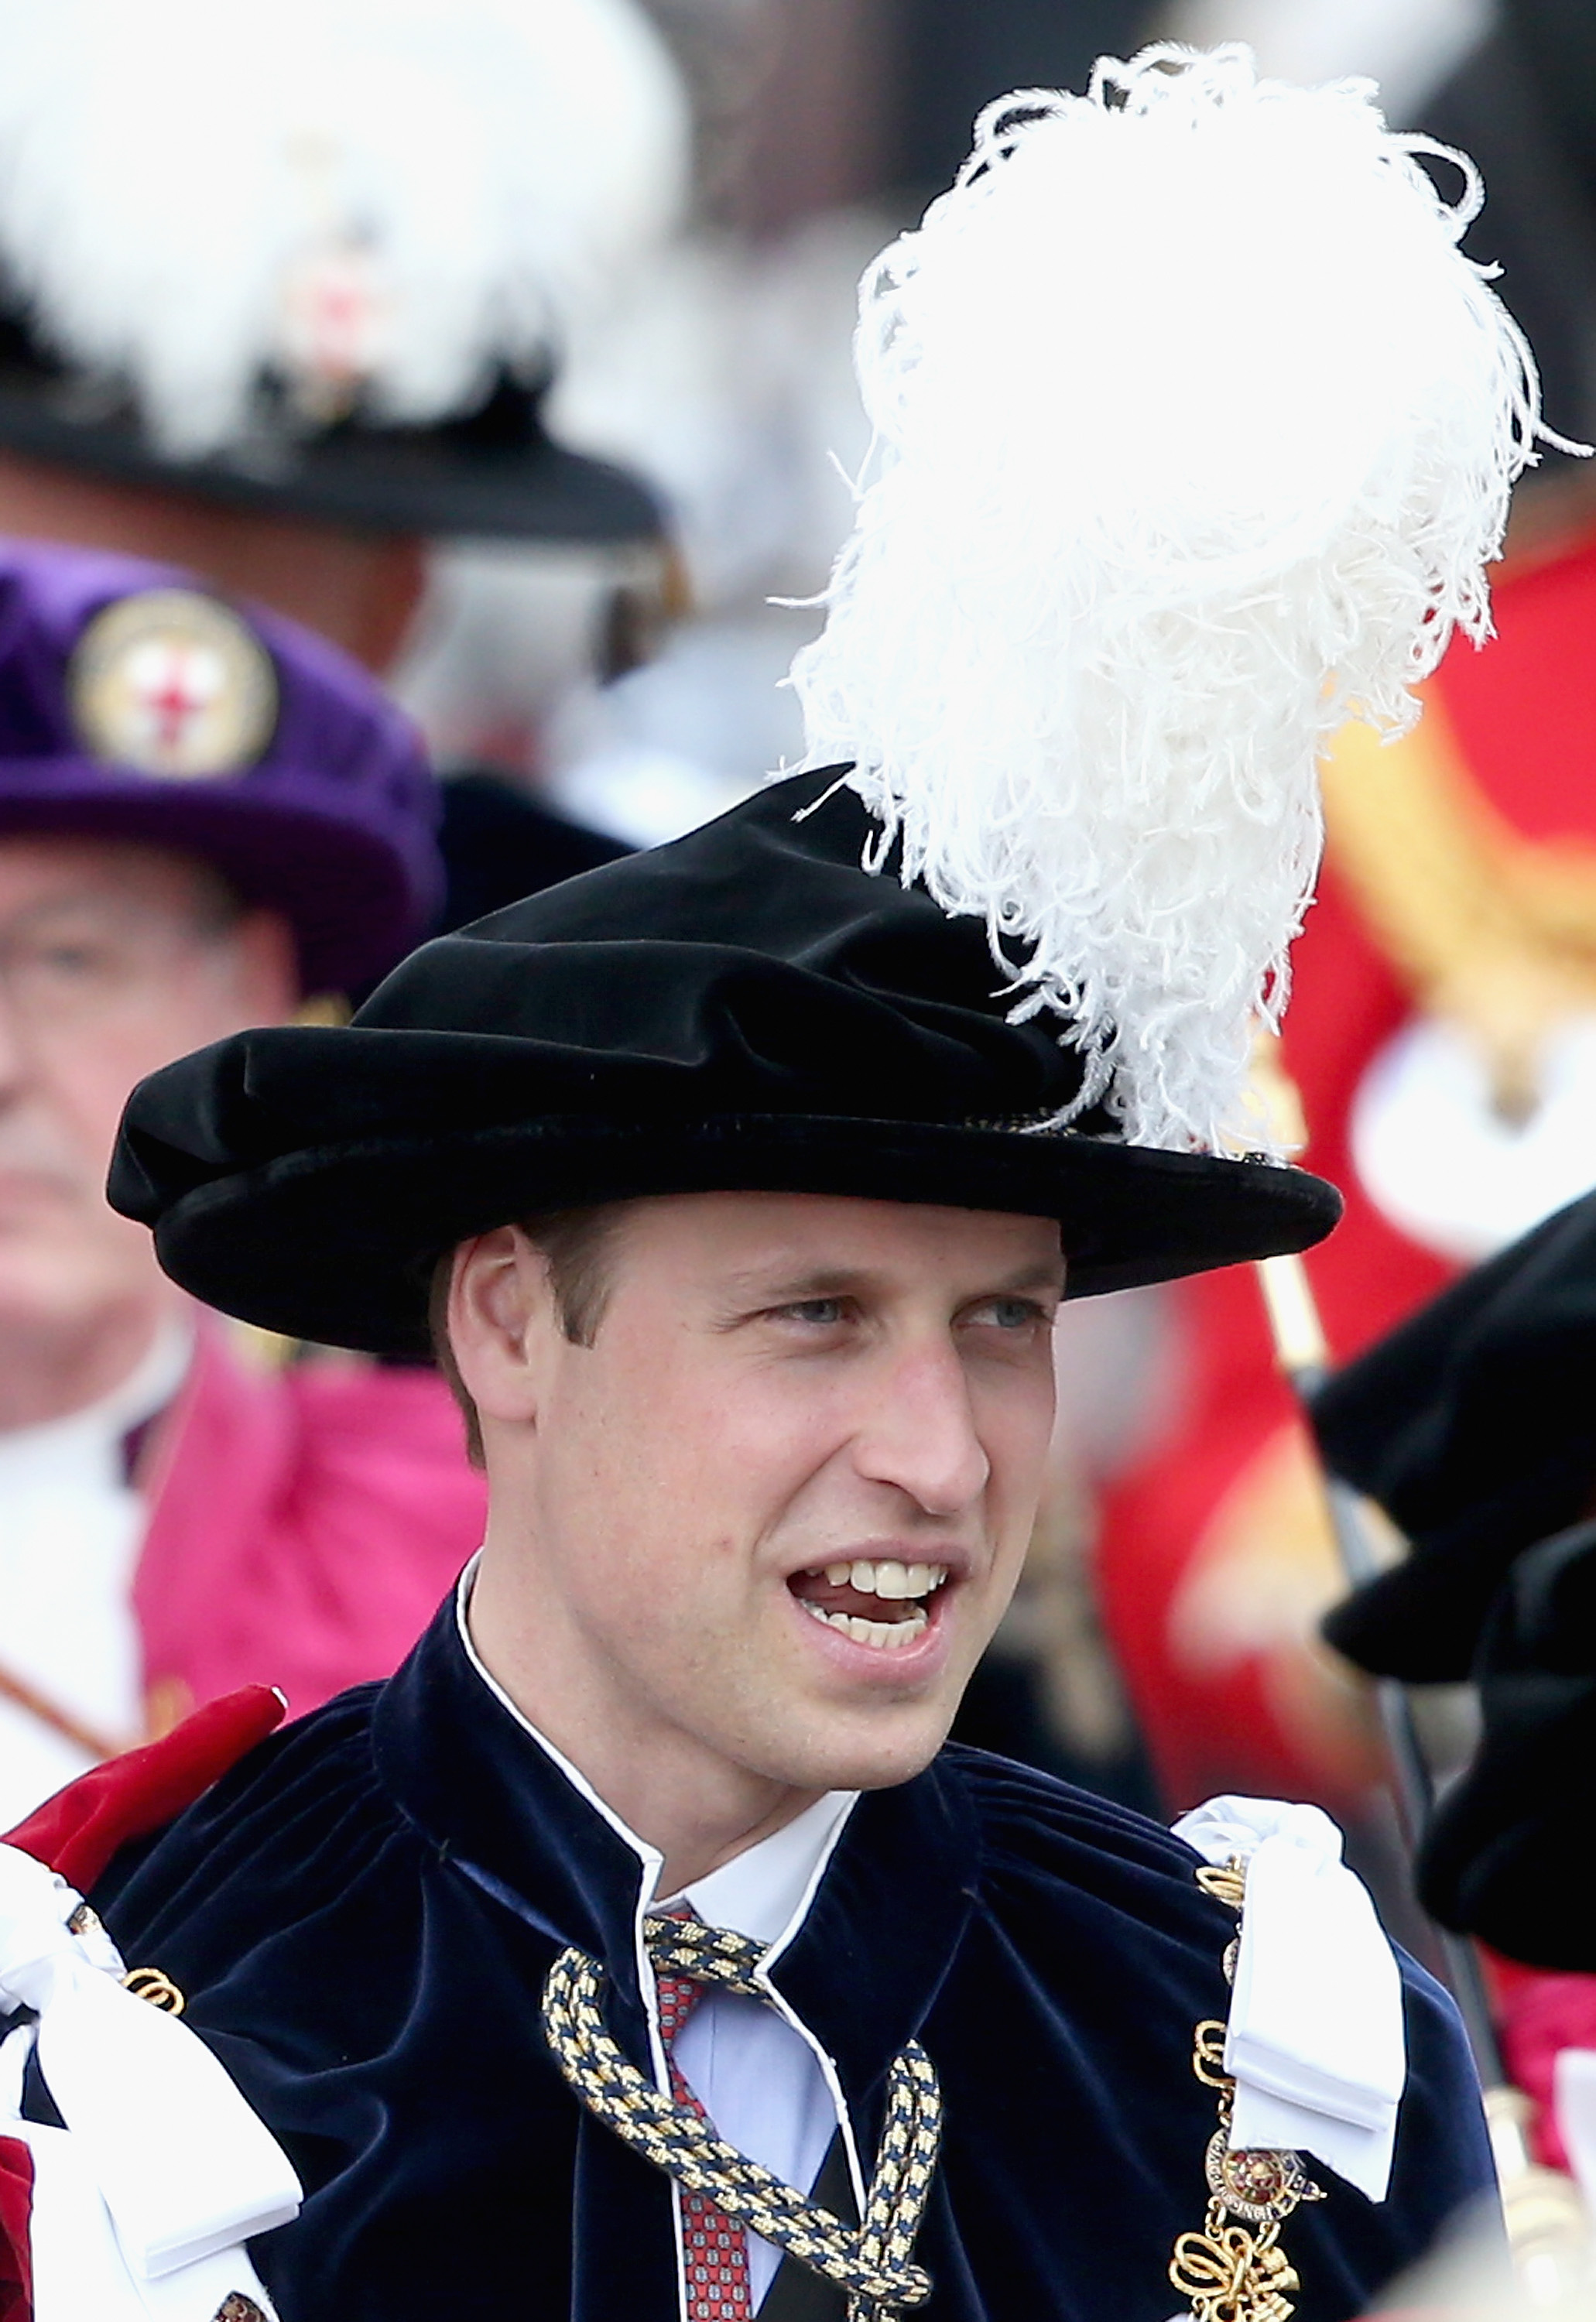 Prince William, Duke of Cambridge attends the Order of the Garter Service at St George's Chapel at Windsor Castle on June 15, 2015 in Windsor, England